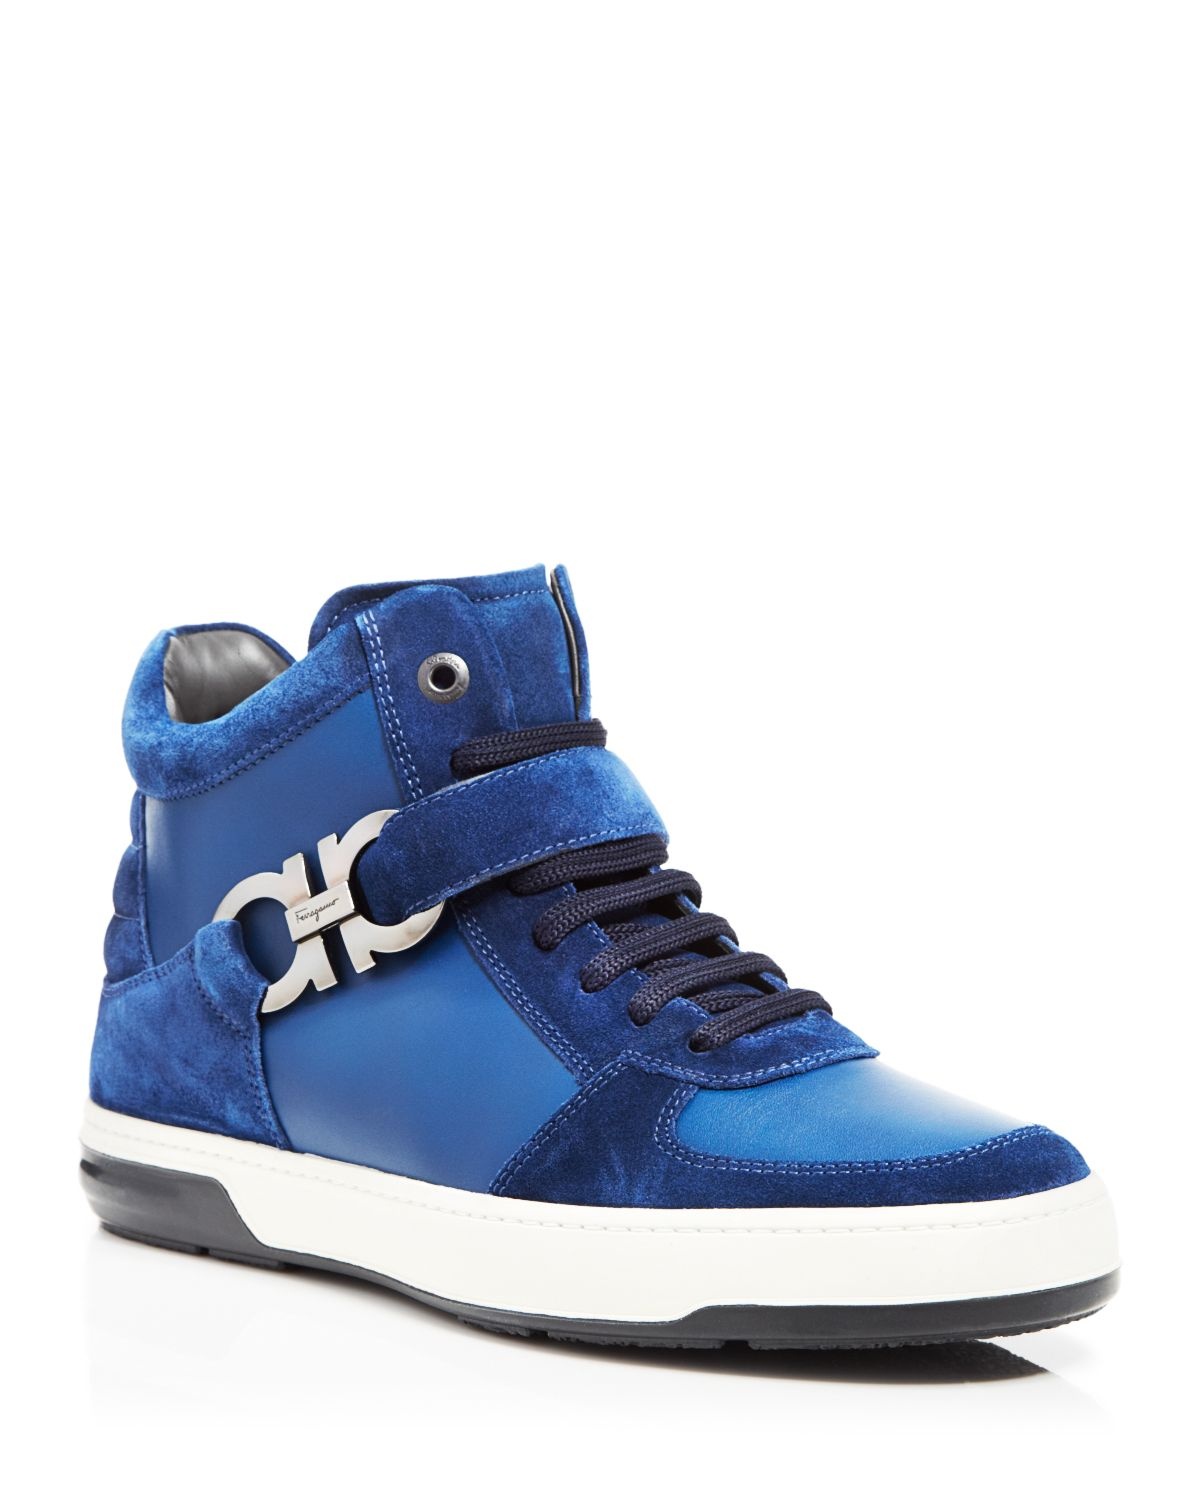 Ferragamo Nayon High Top Sneakers in Blue for Men